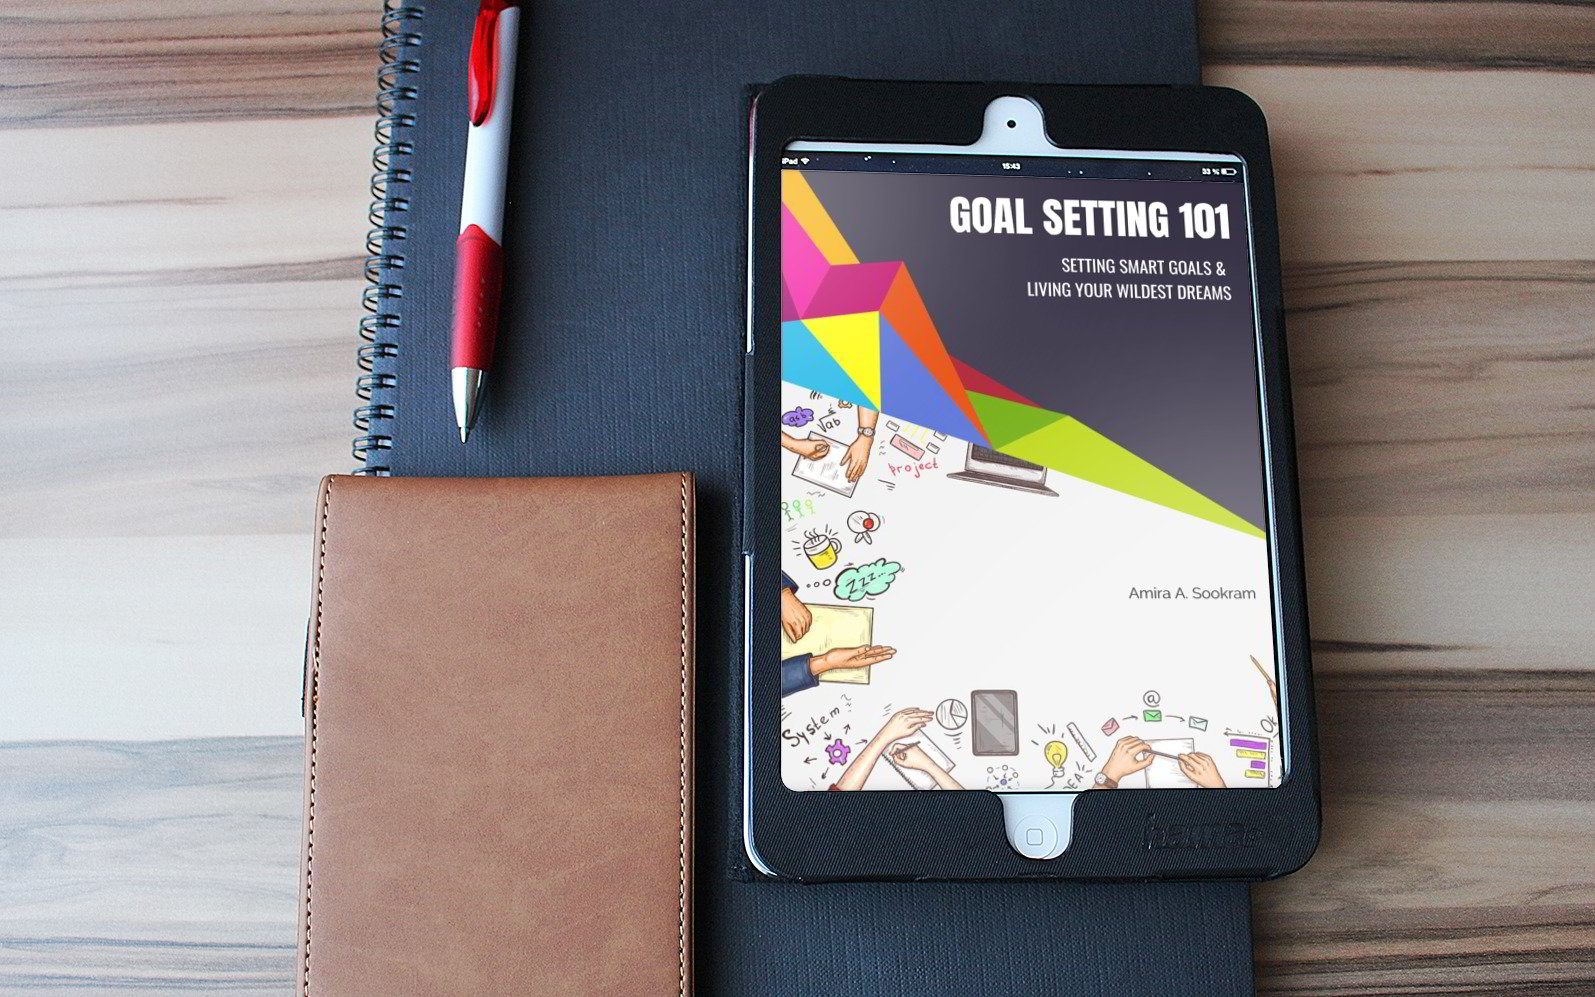 Goal Setting 101 - Setting Smart Goals & Living Your Wildest Dreams For: $9.95 ($15.95 Value)